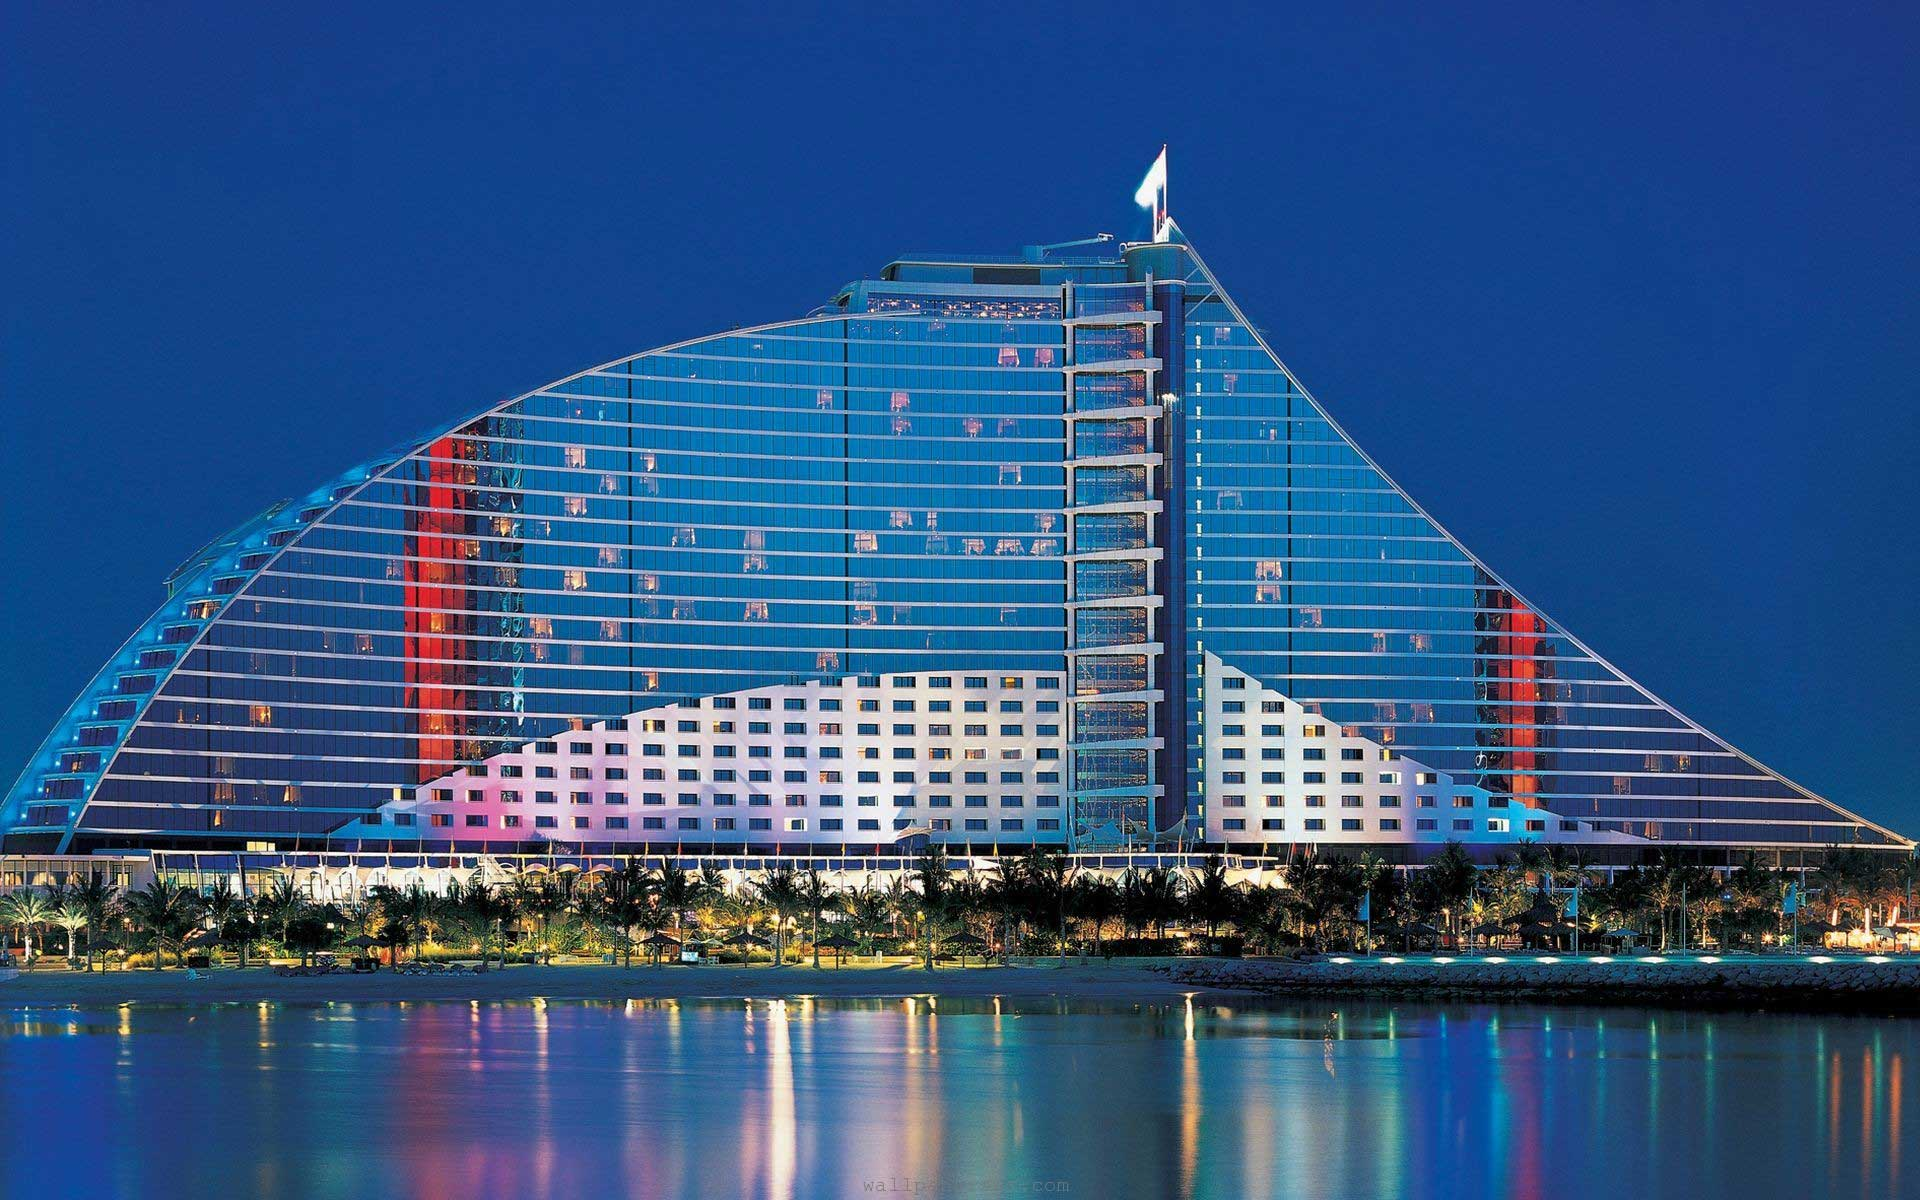 meydan race season 2014 hotel deal with the ritz carlton